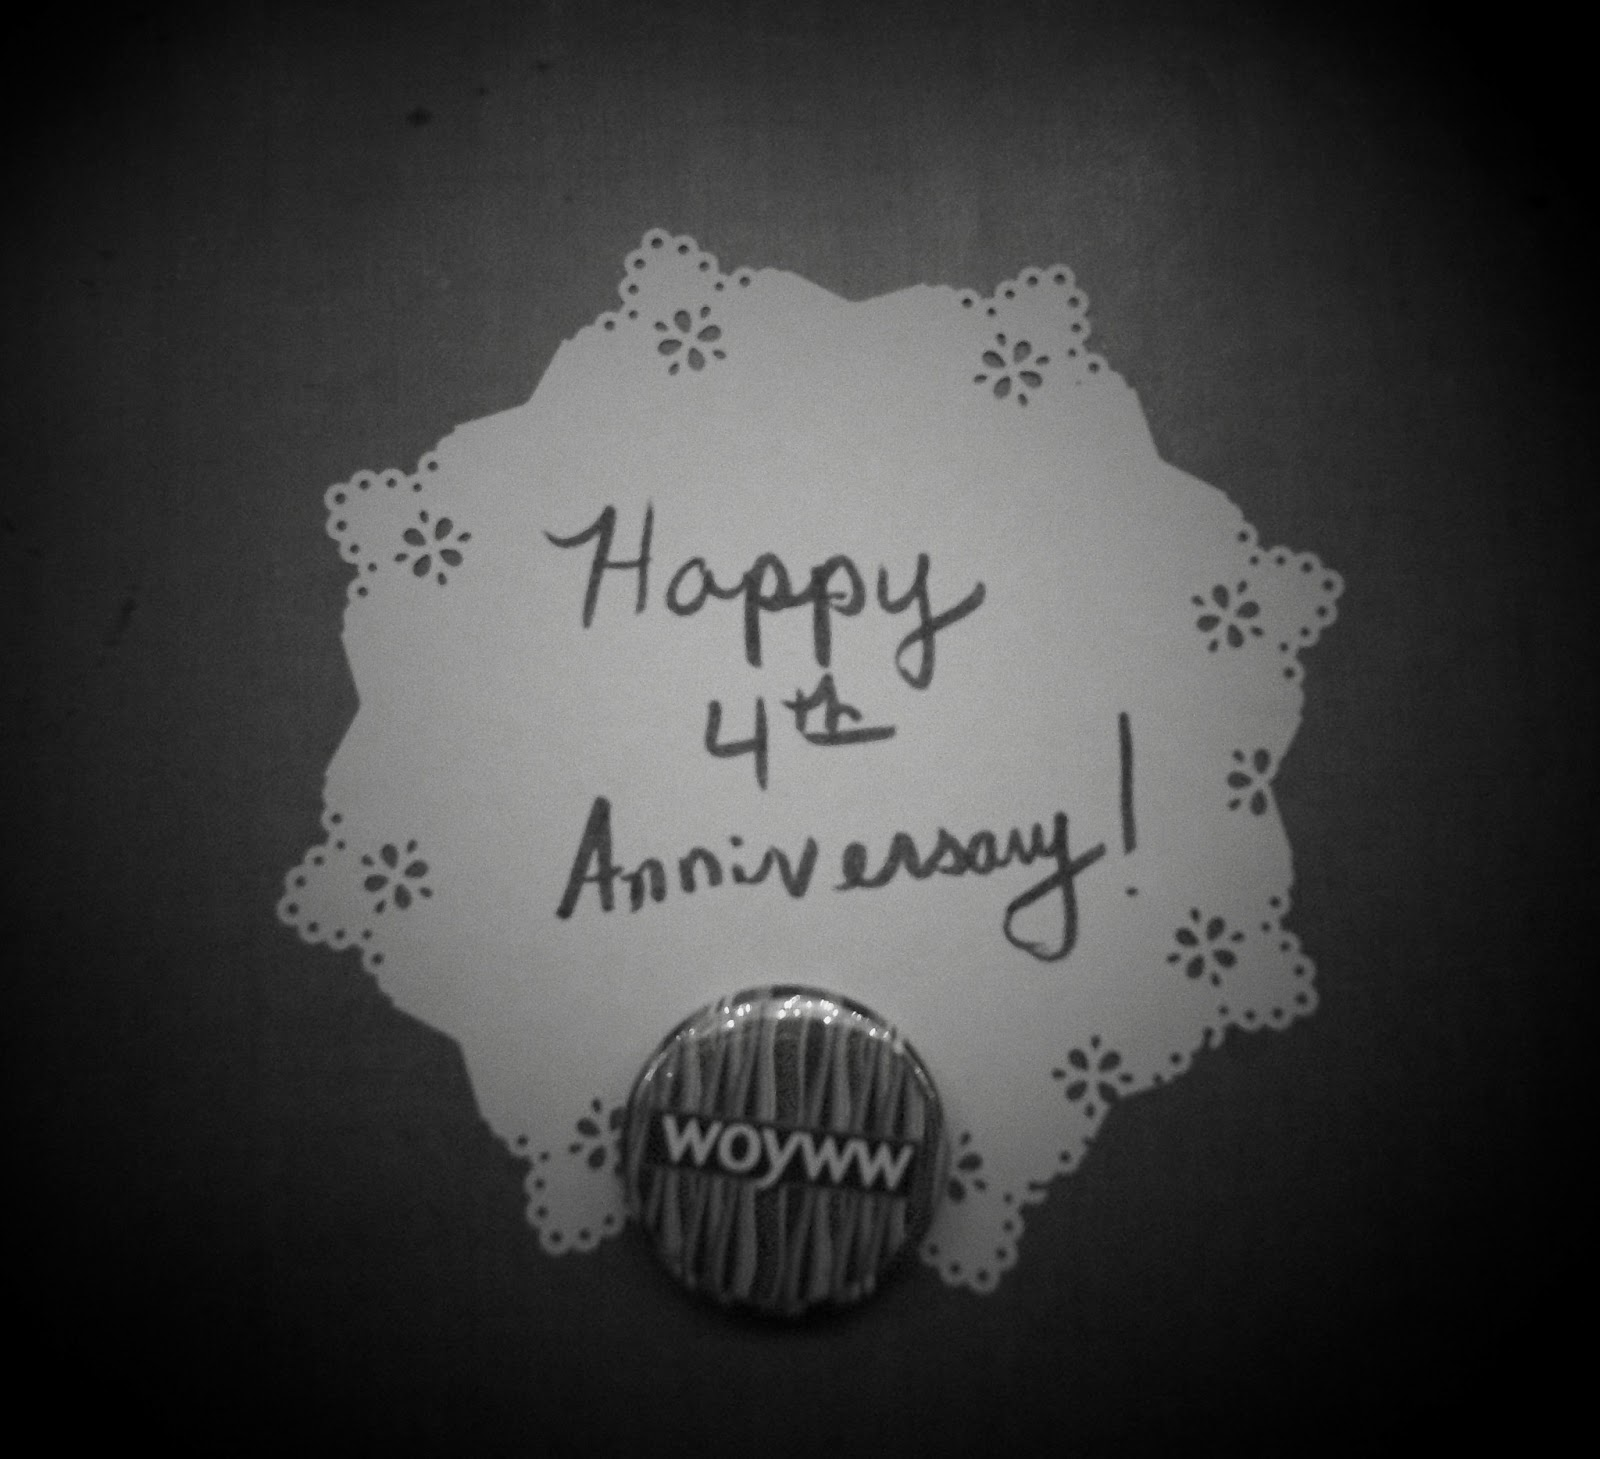 Four Year Wedding Anniversary Quotes Quotesgram: Ex Anniversary Quotes. QuotesGram